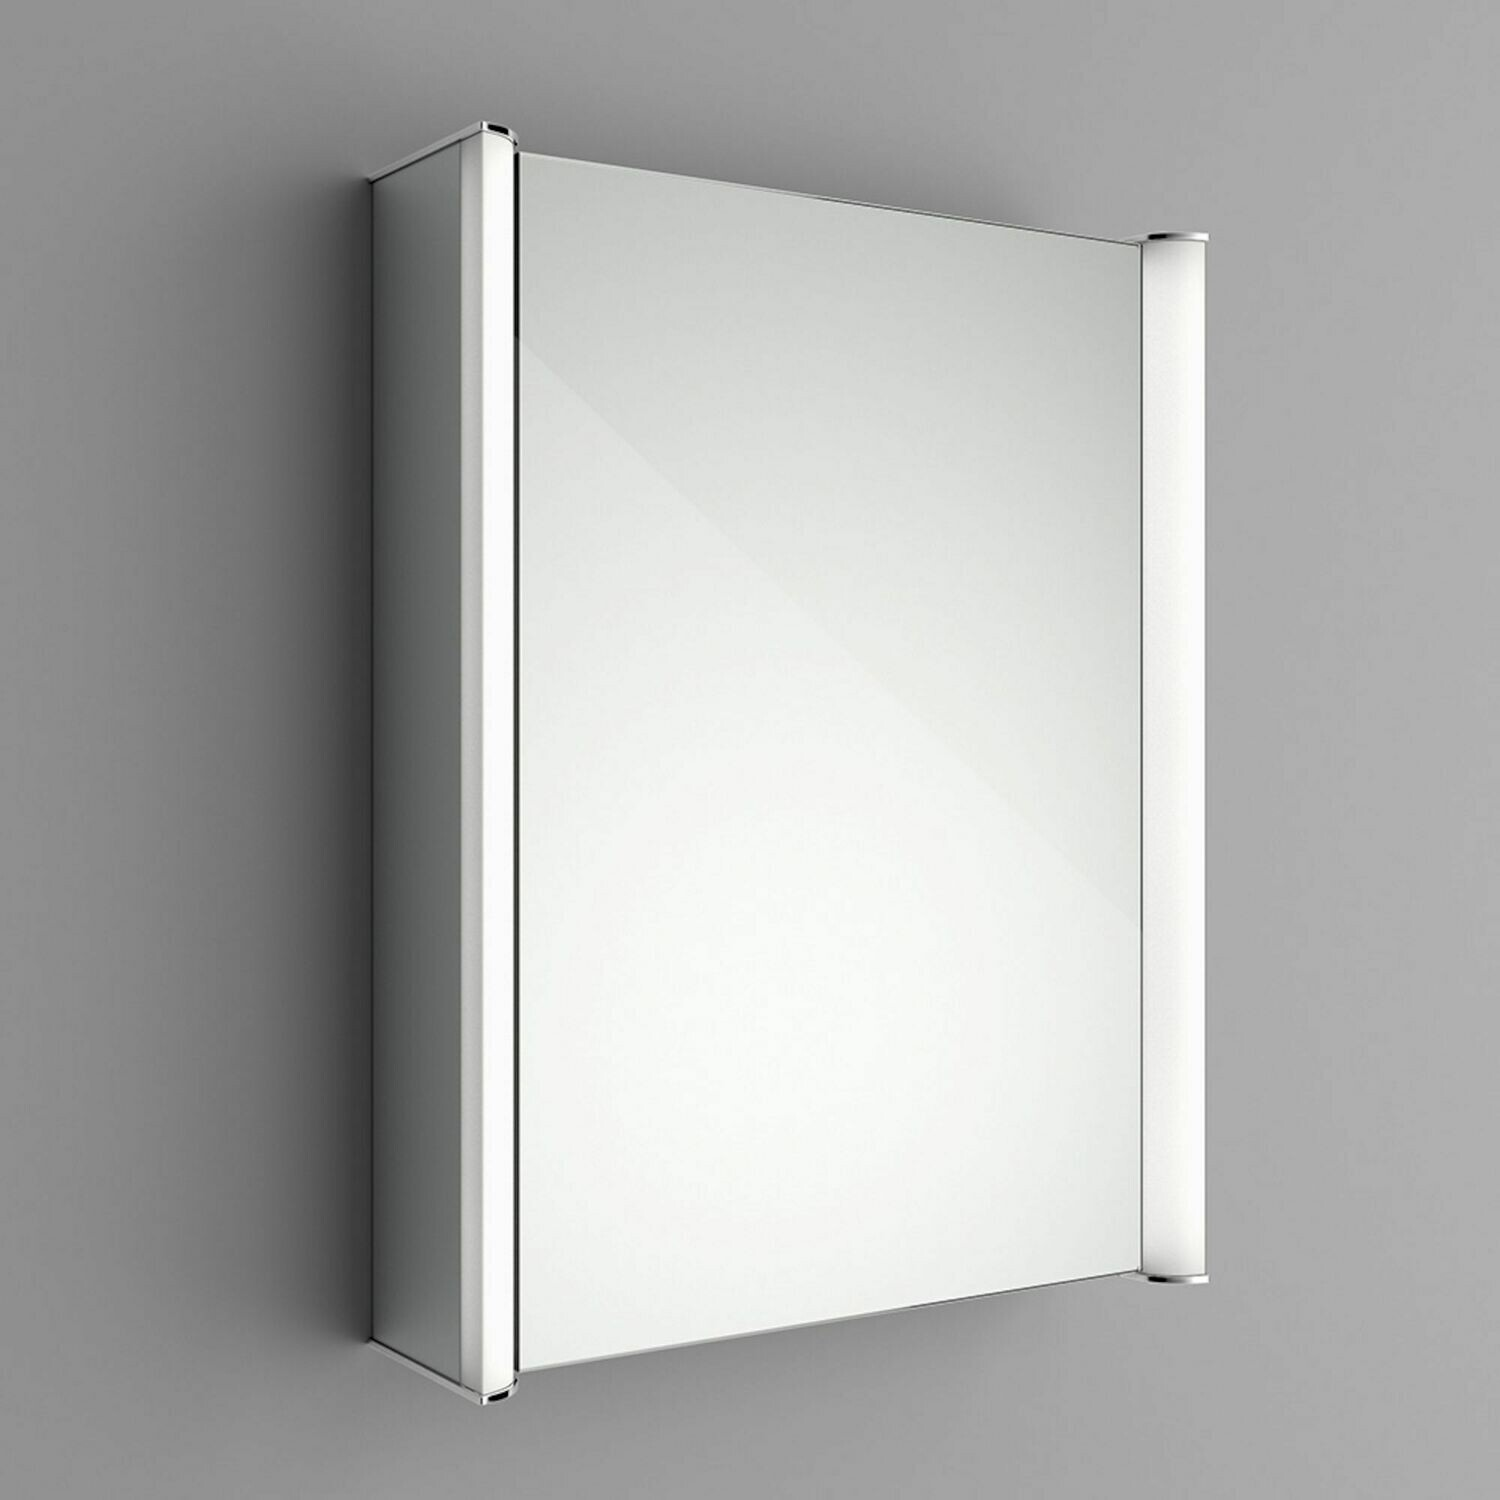 Luminaire Illuminated LED Mirror Cabinet - Bluetooth Speaker & Shaver Socket